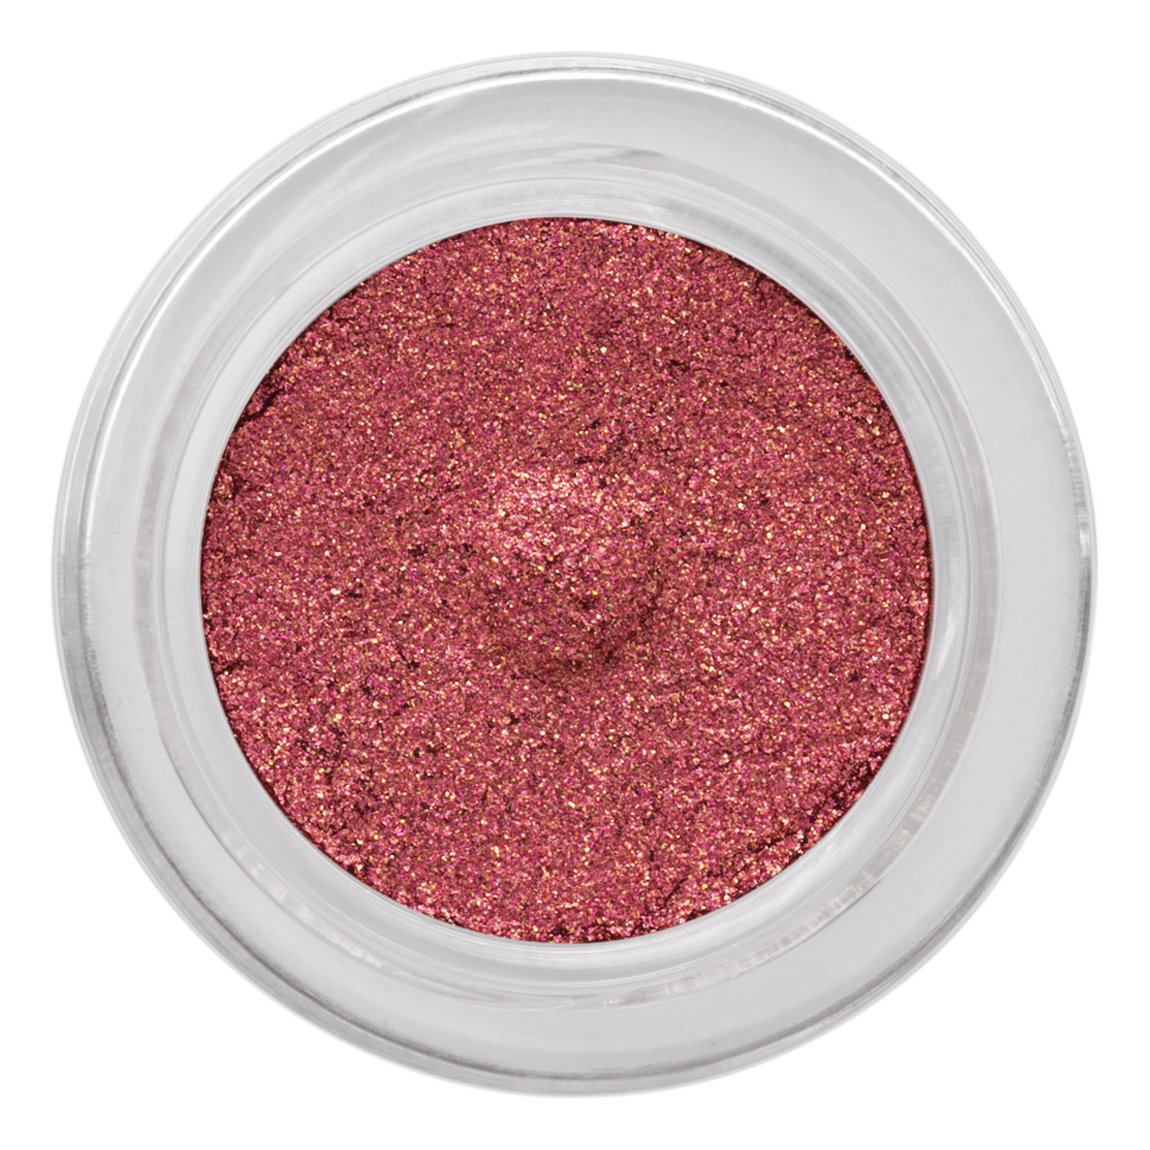 Hourglass Scattered Light Glitter Eyeshadow Rapture